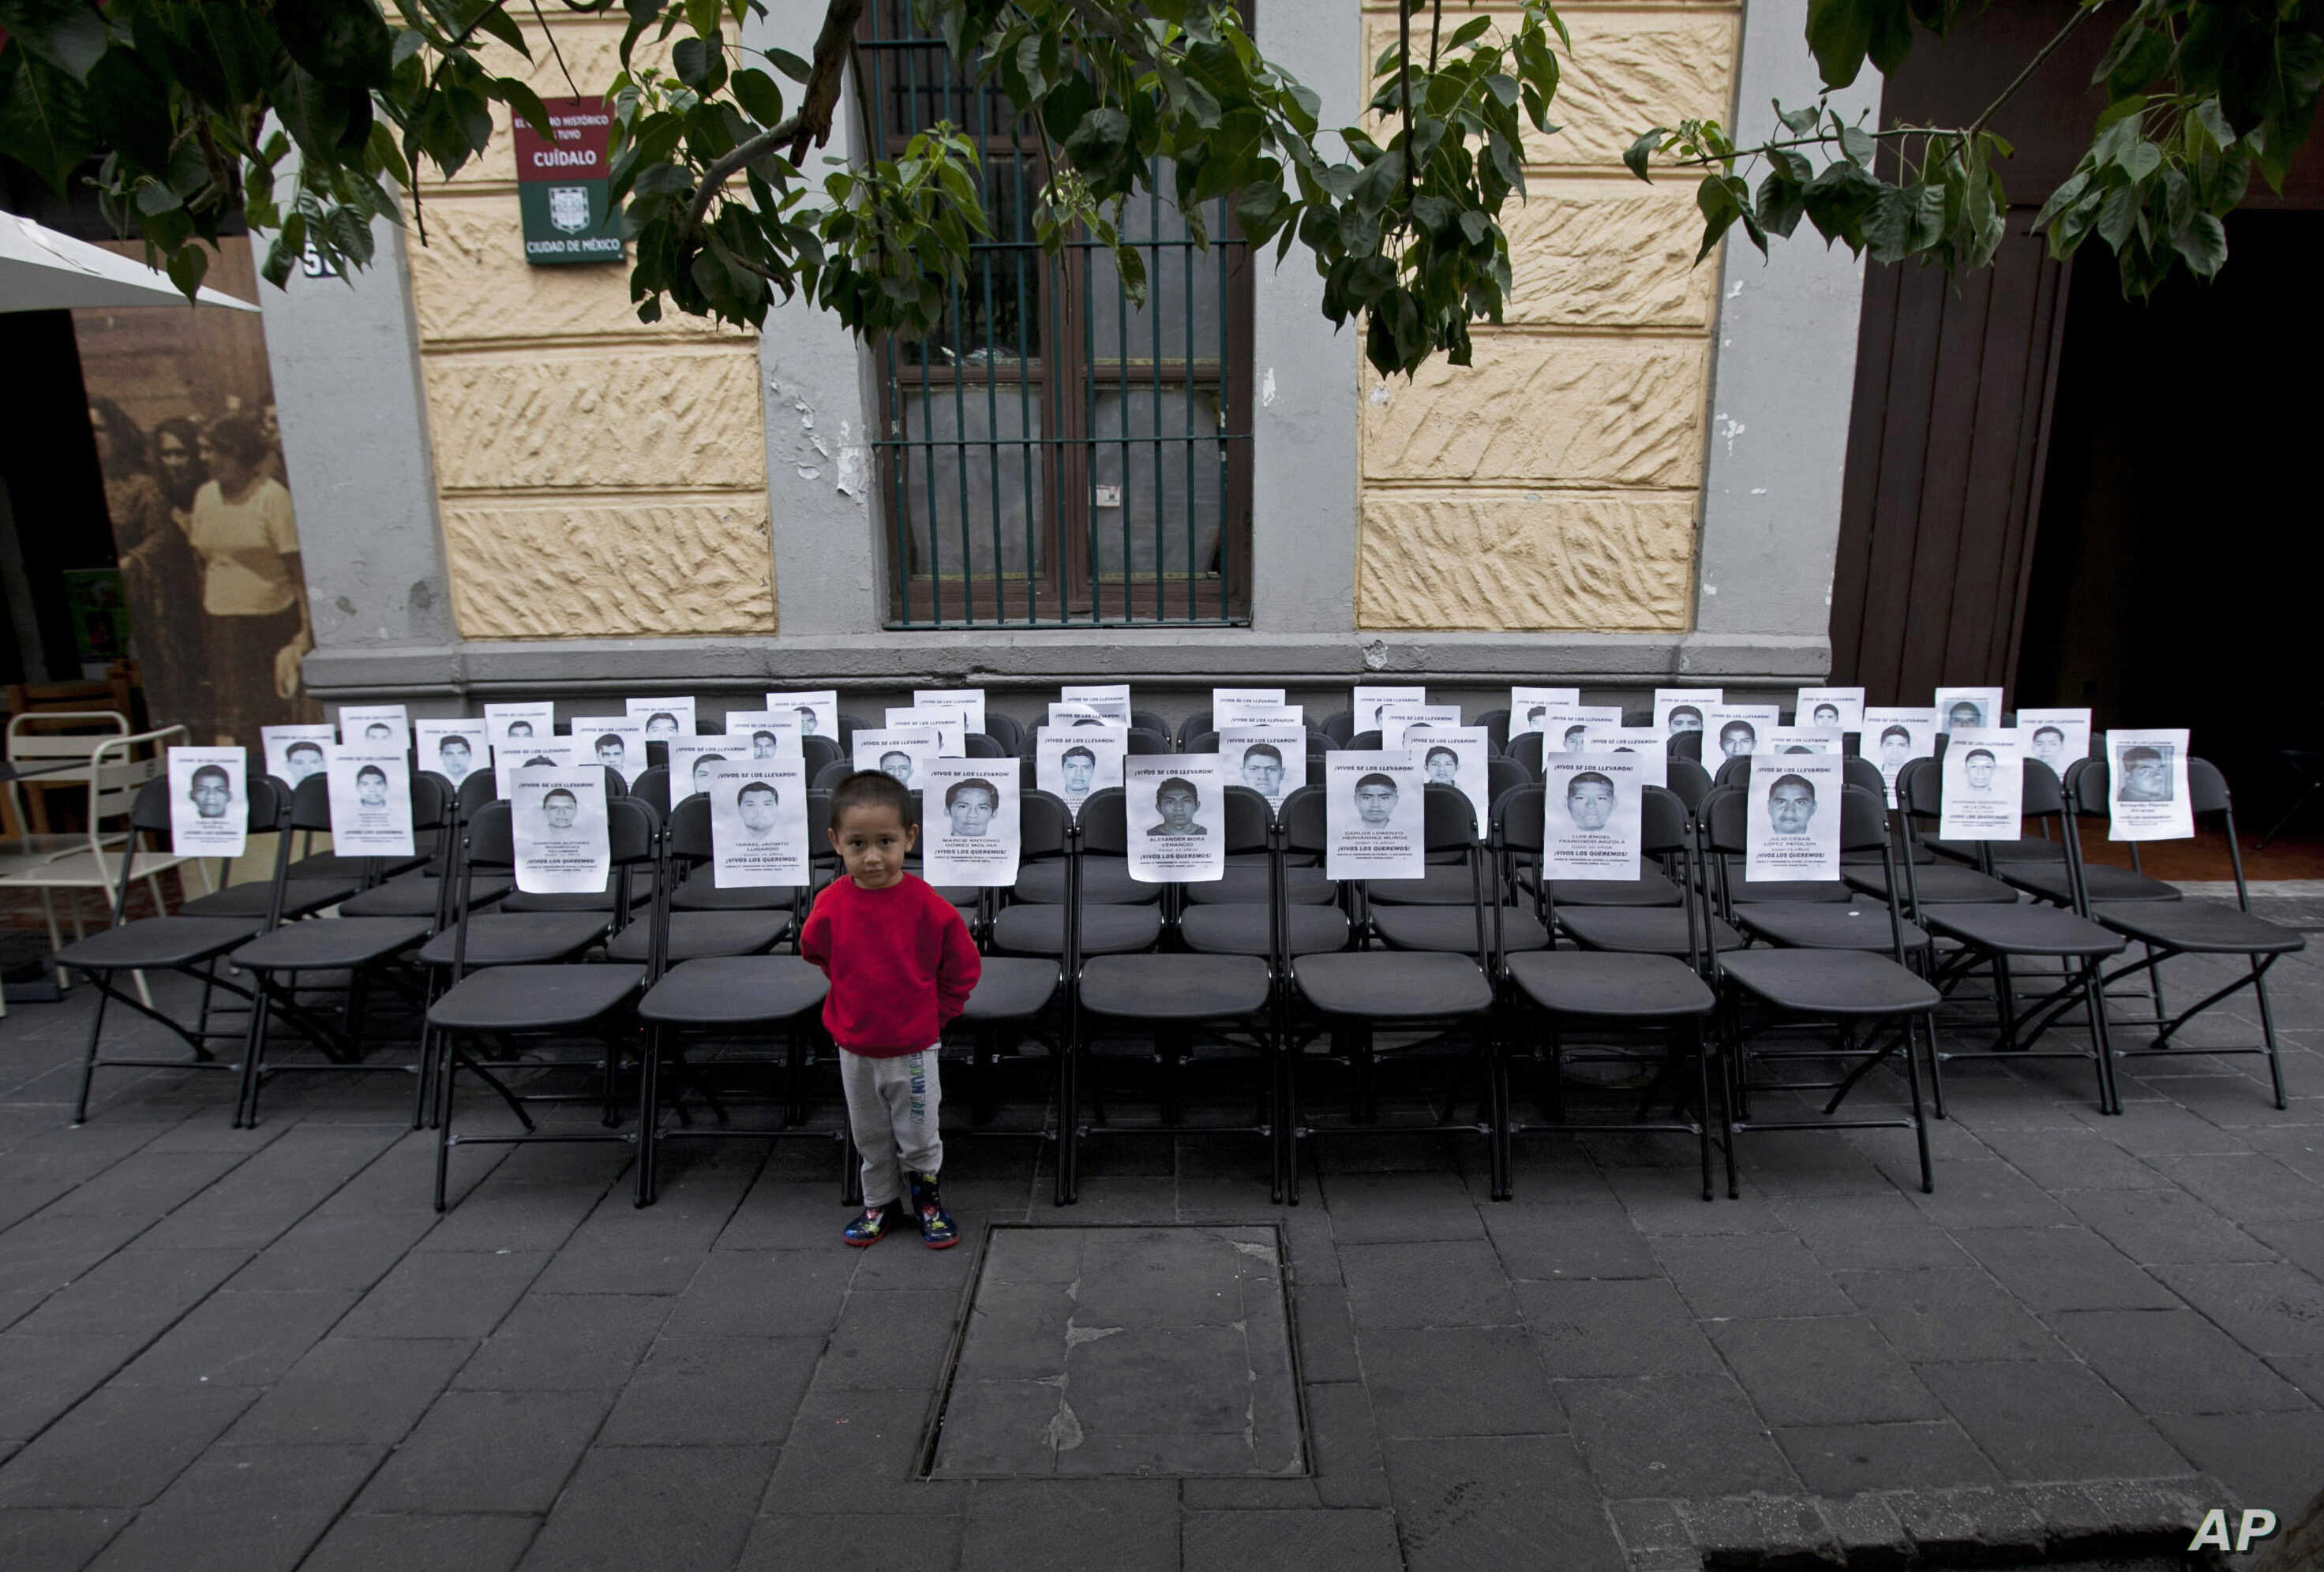 A child stands before a memorial made up of empty chairs bearing images of 43 missing students, set up to mark the nine-month anniversary of their disappearance, in Mexico City, June 27, 2015.